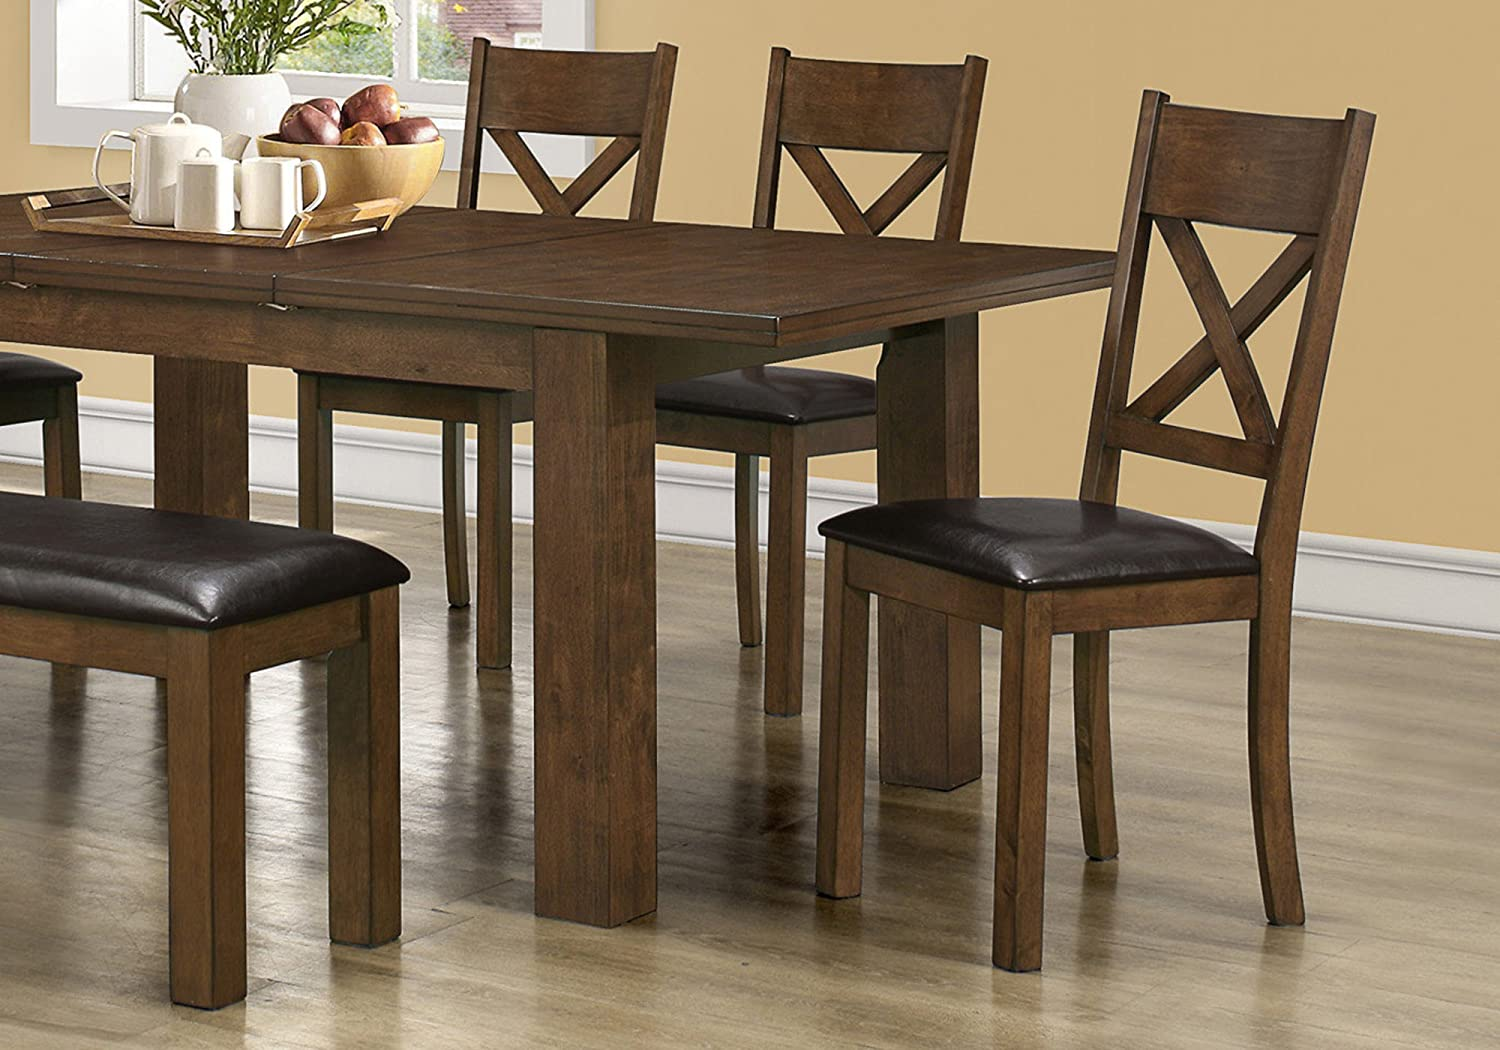 I 1551 Set Of 2 Solid Wood Dining Chairs Leather Look Upholstered Seats Brown Kitchen Chairs Amazon Ca Home Kitchen